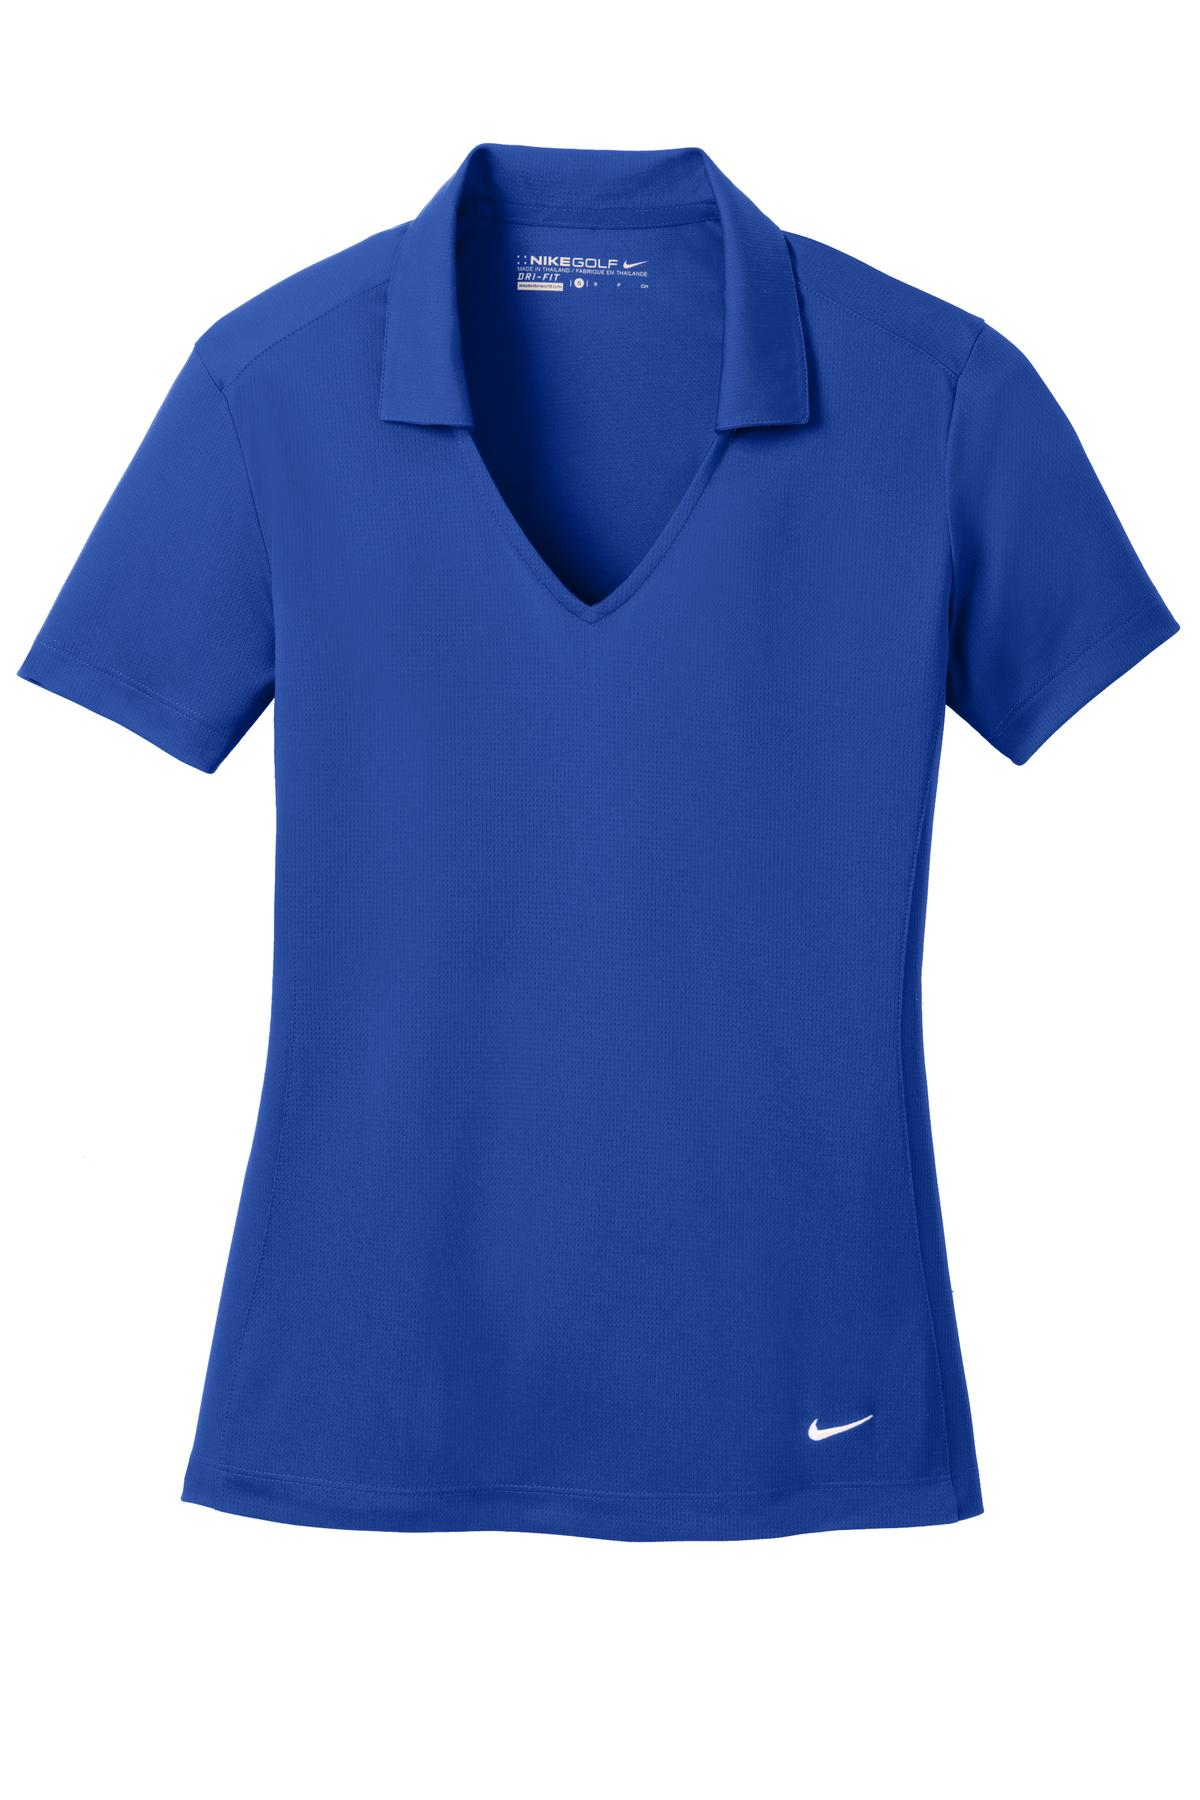 Old Royal Nike Ladies Dri-FIT Vertical Mesh Polo.